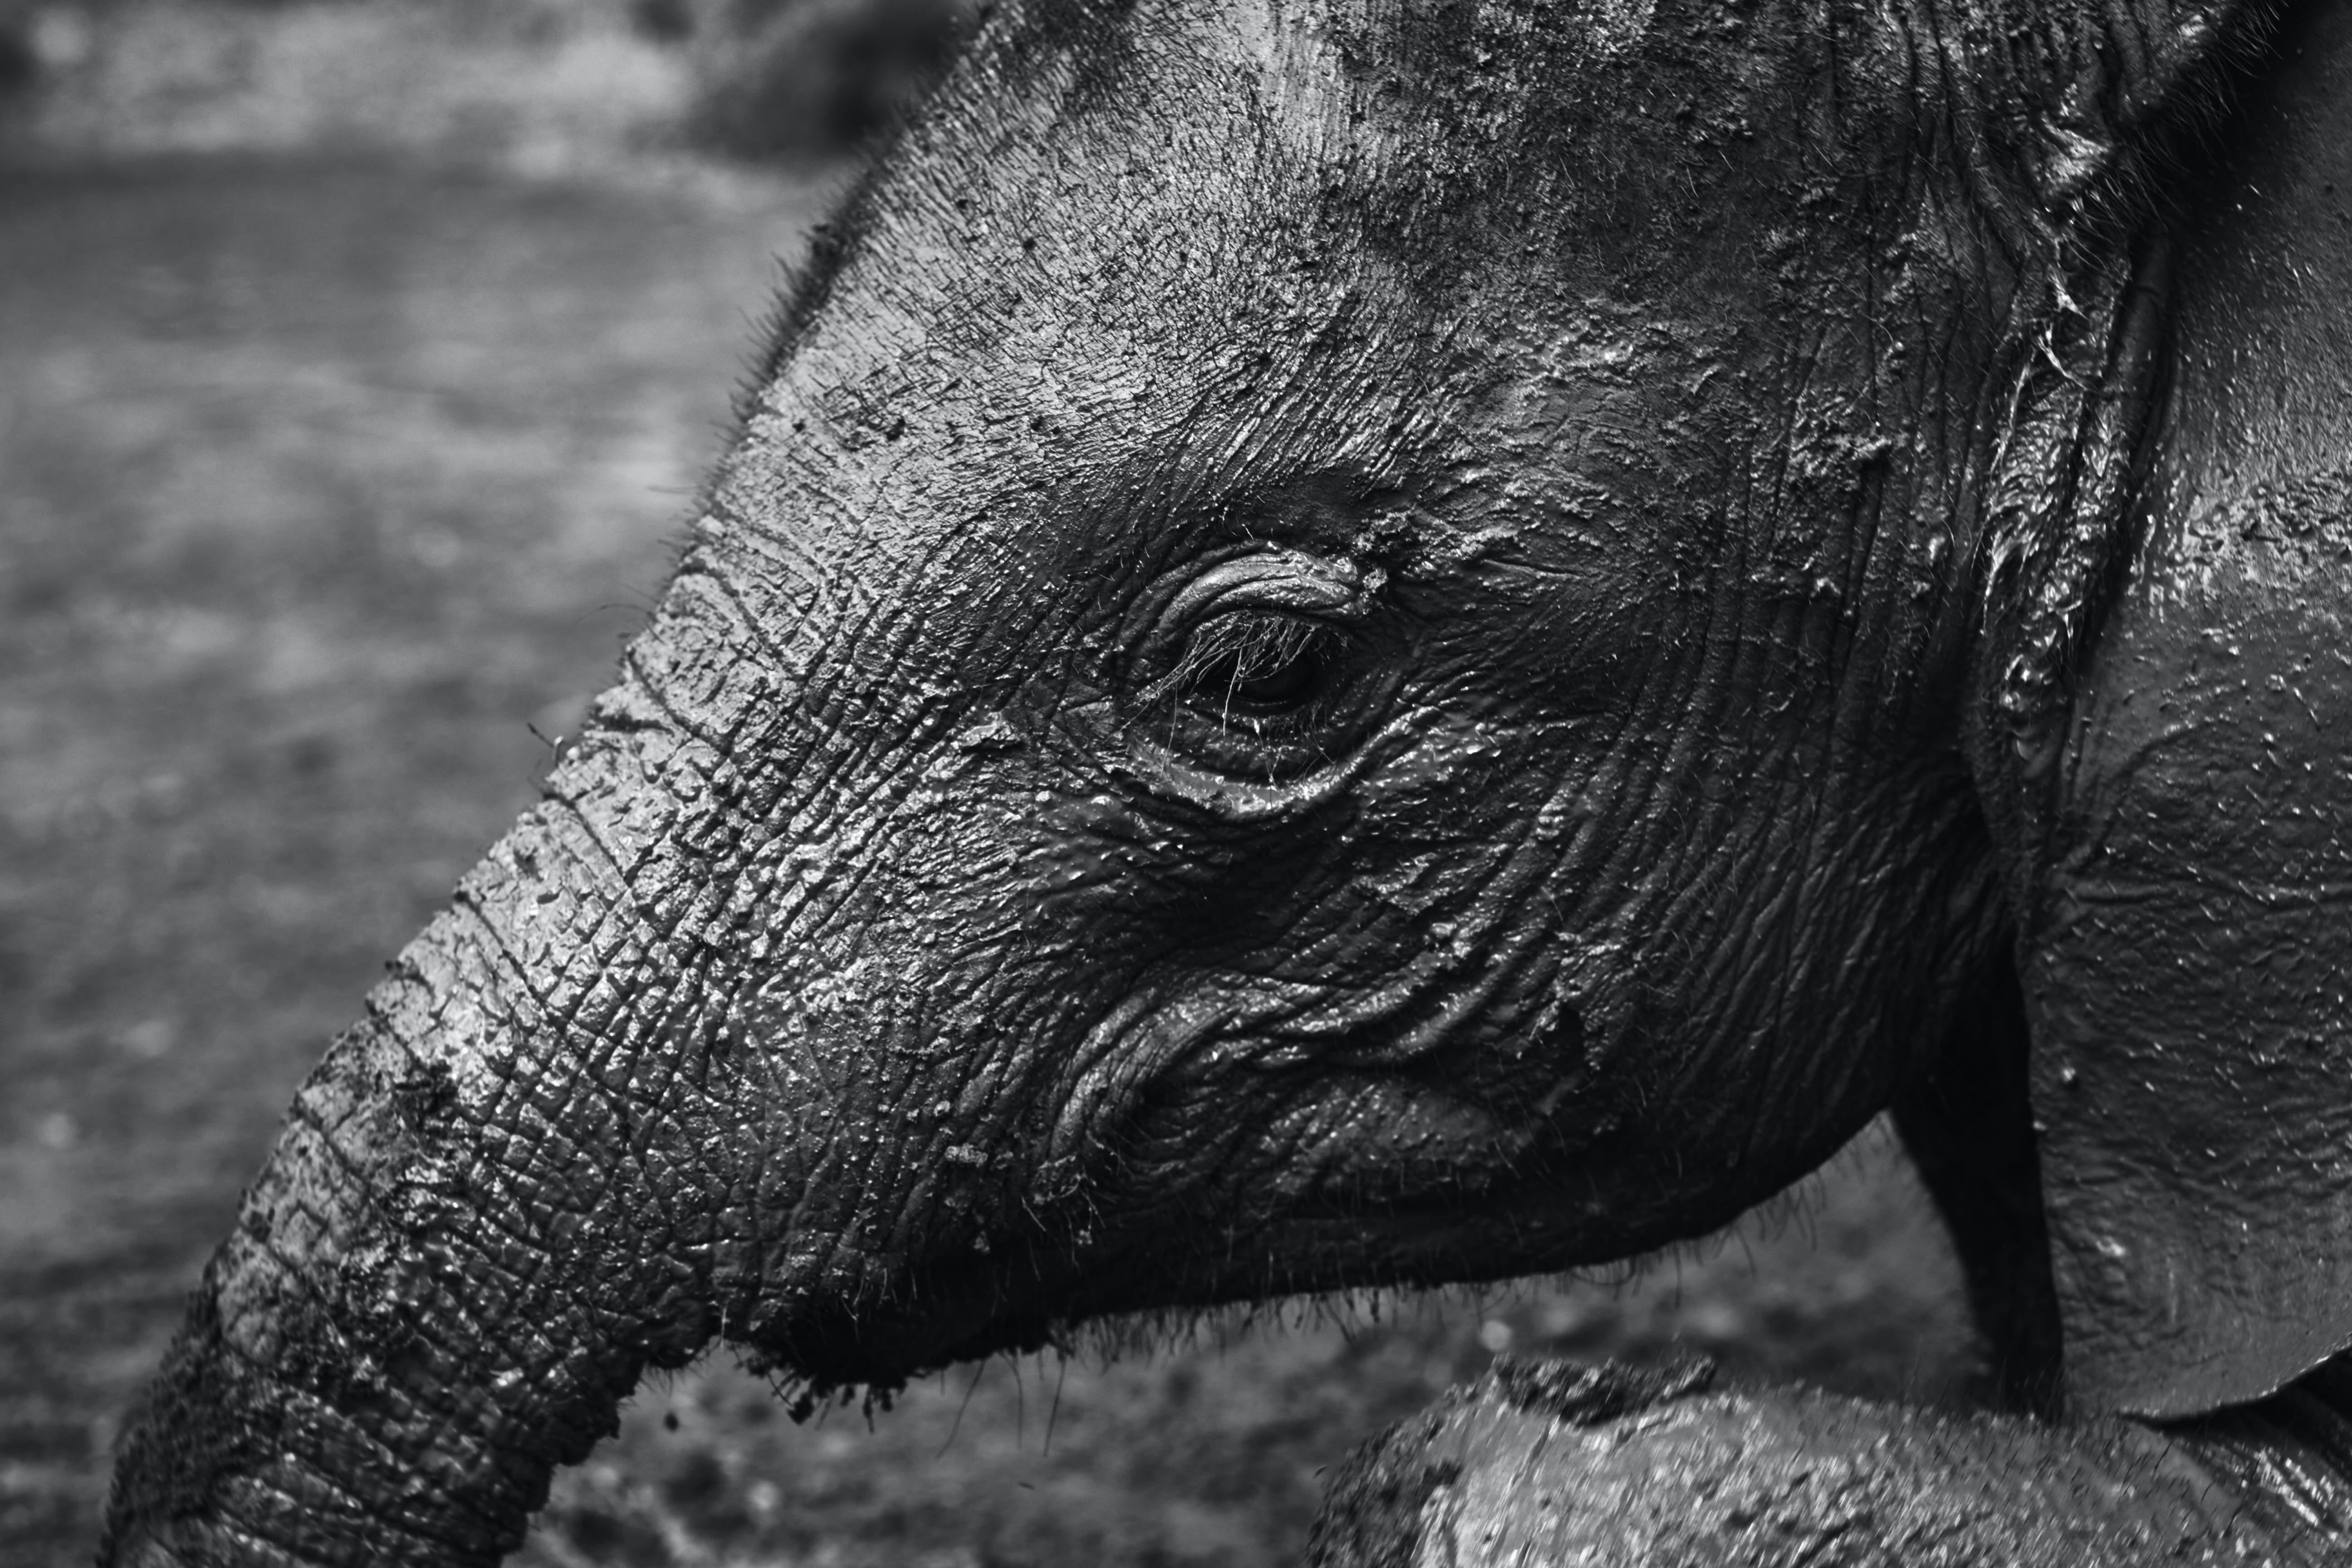 Close-up of Elephant Calf